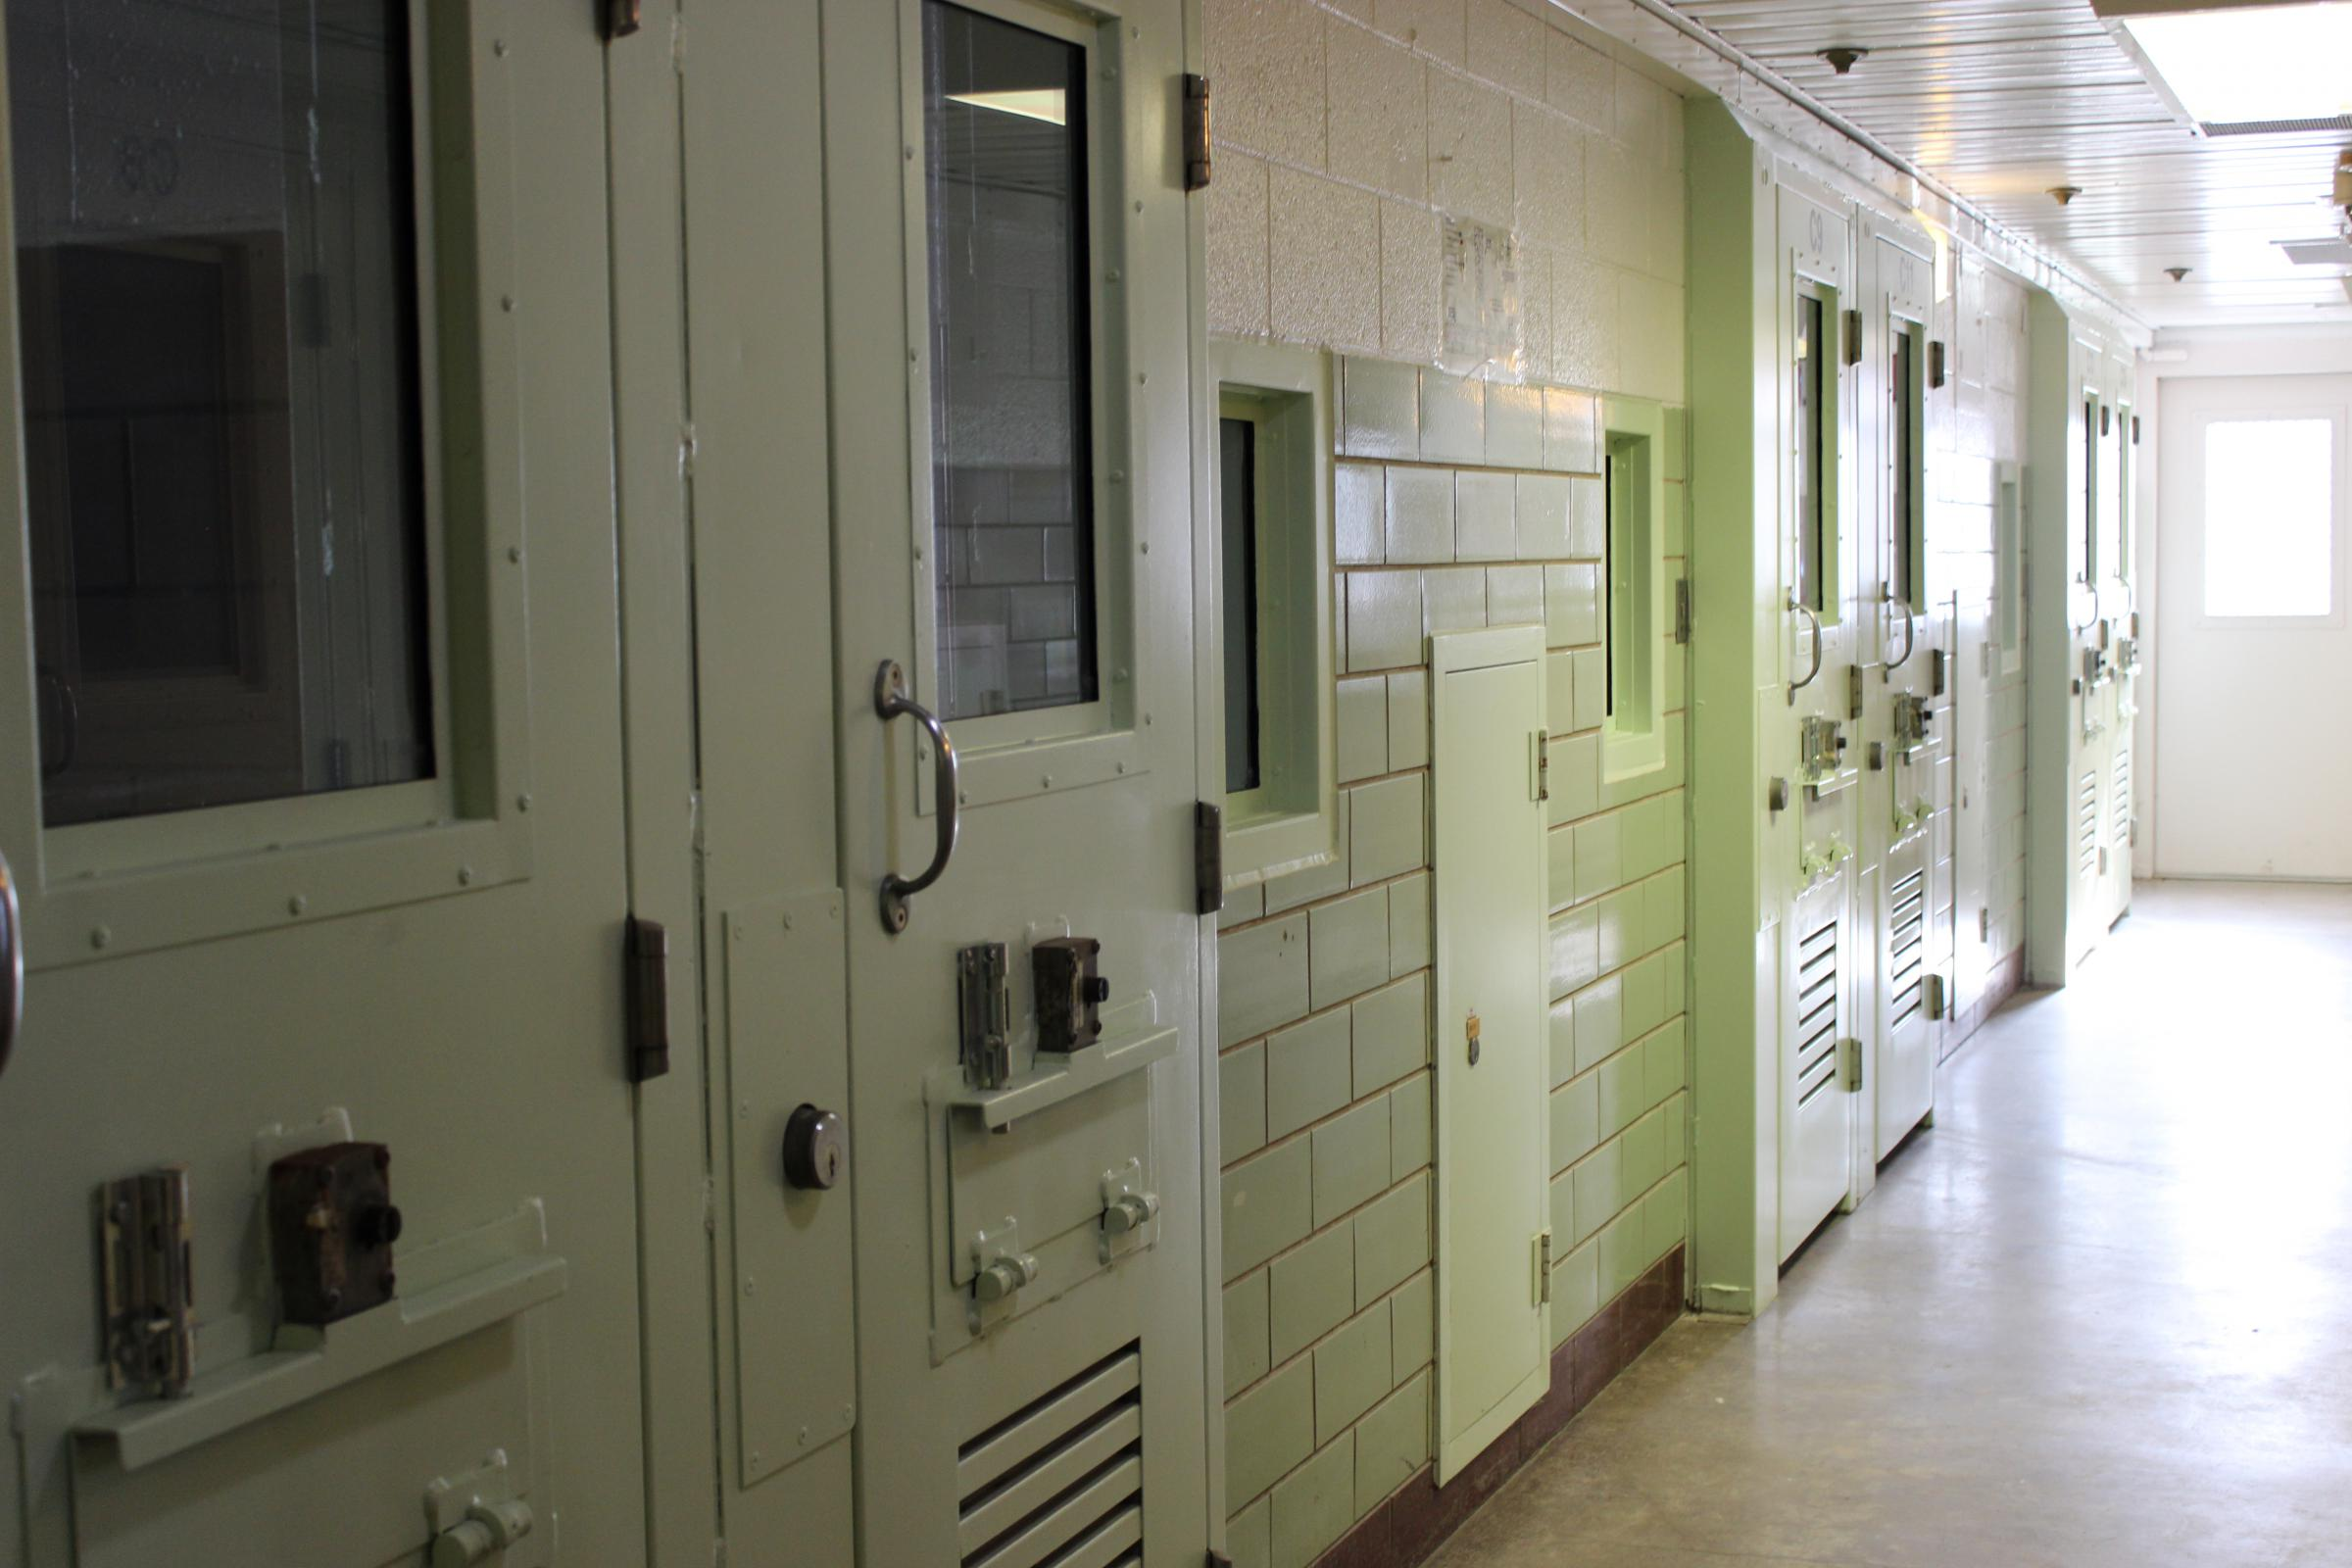 Prisoners With Mental Illness Still Waiting For Treatment